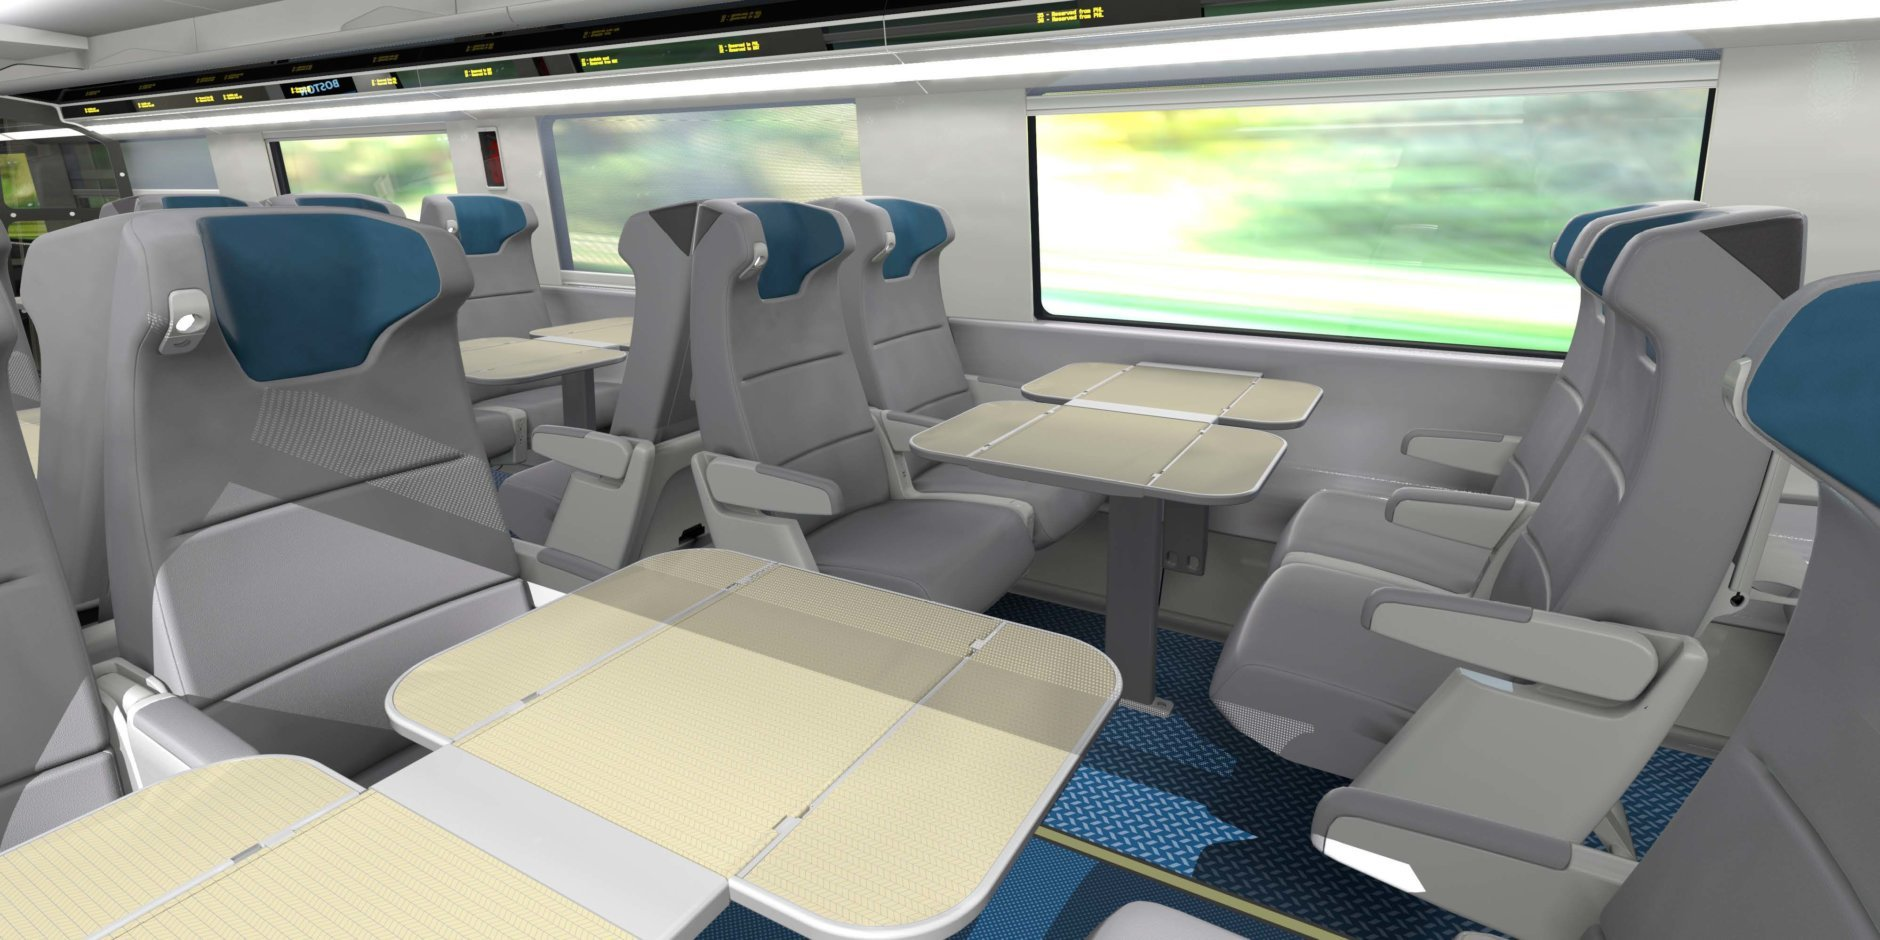 Amtrak is touting will provide spacious, high-end comfort with in-seat lighting and personal electrical outlets. (Courtesy Amtrak)